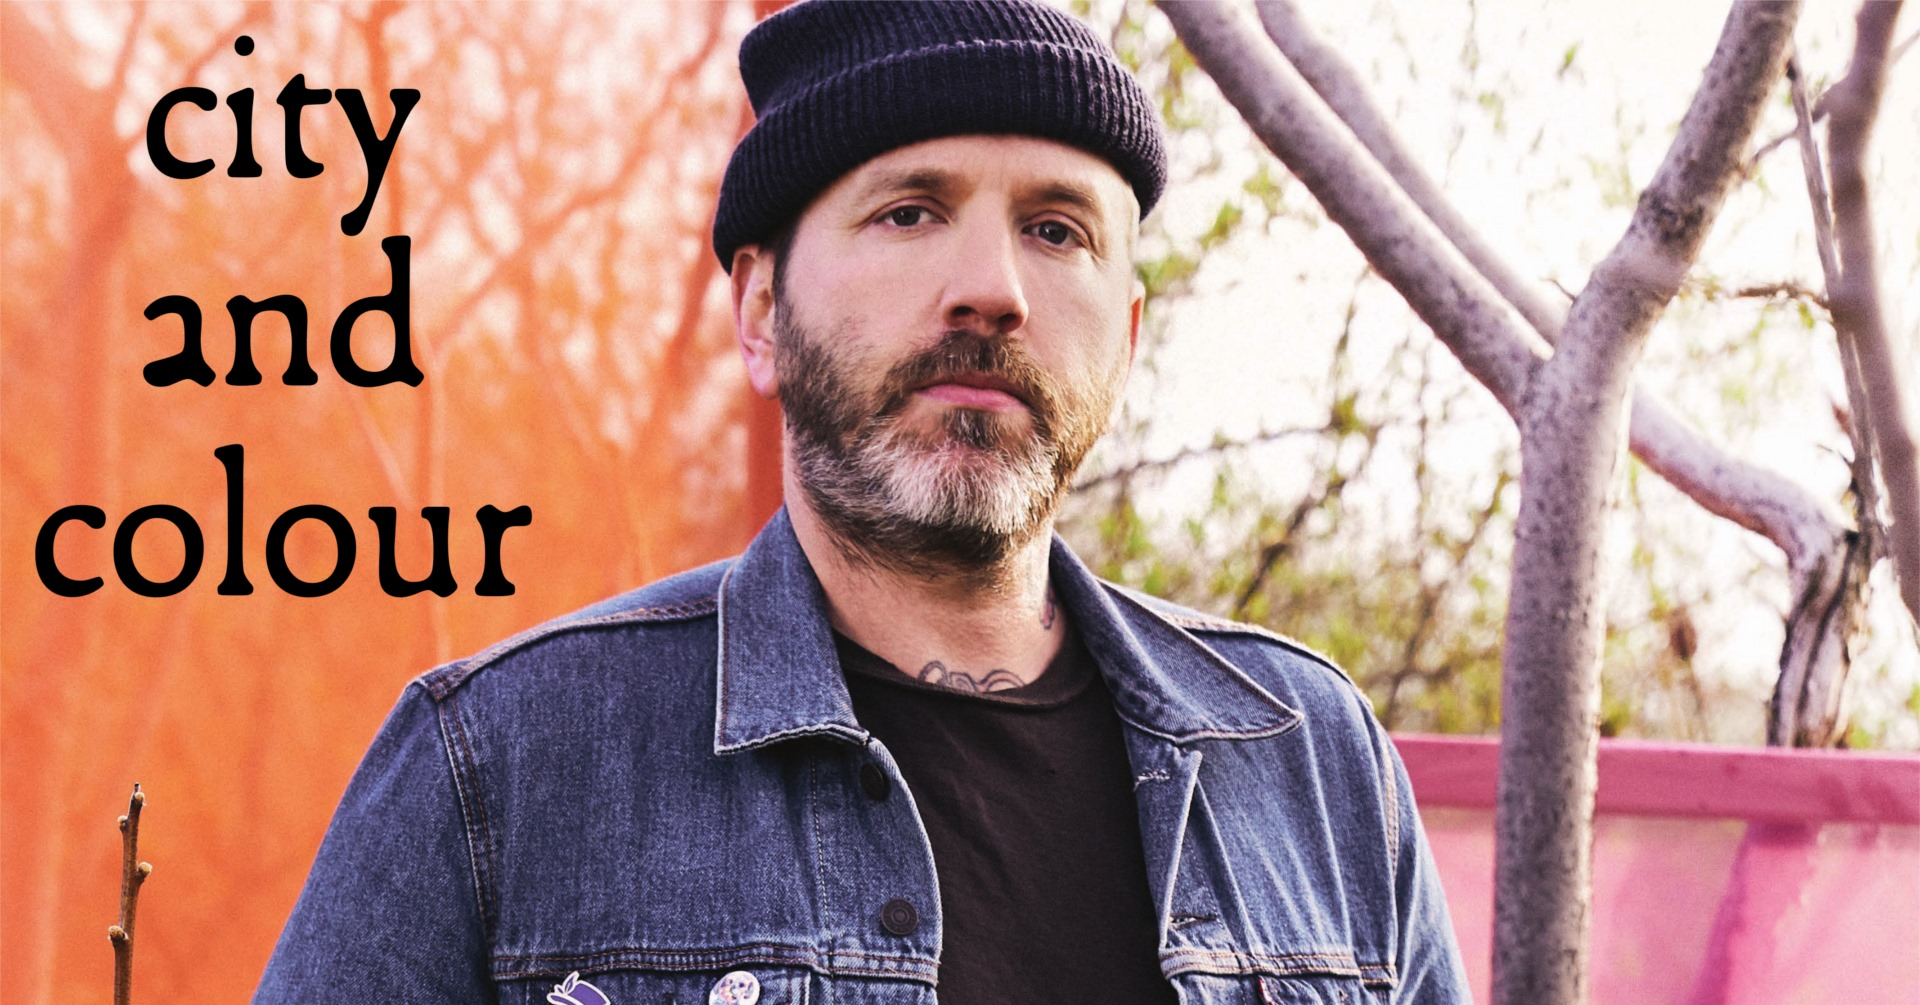 City And Colour am 10. February 2020 @ Alte Kongresshalle.